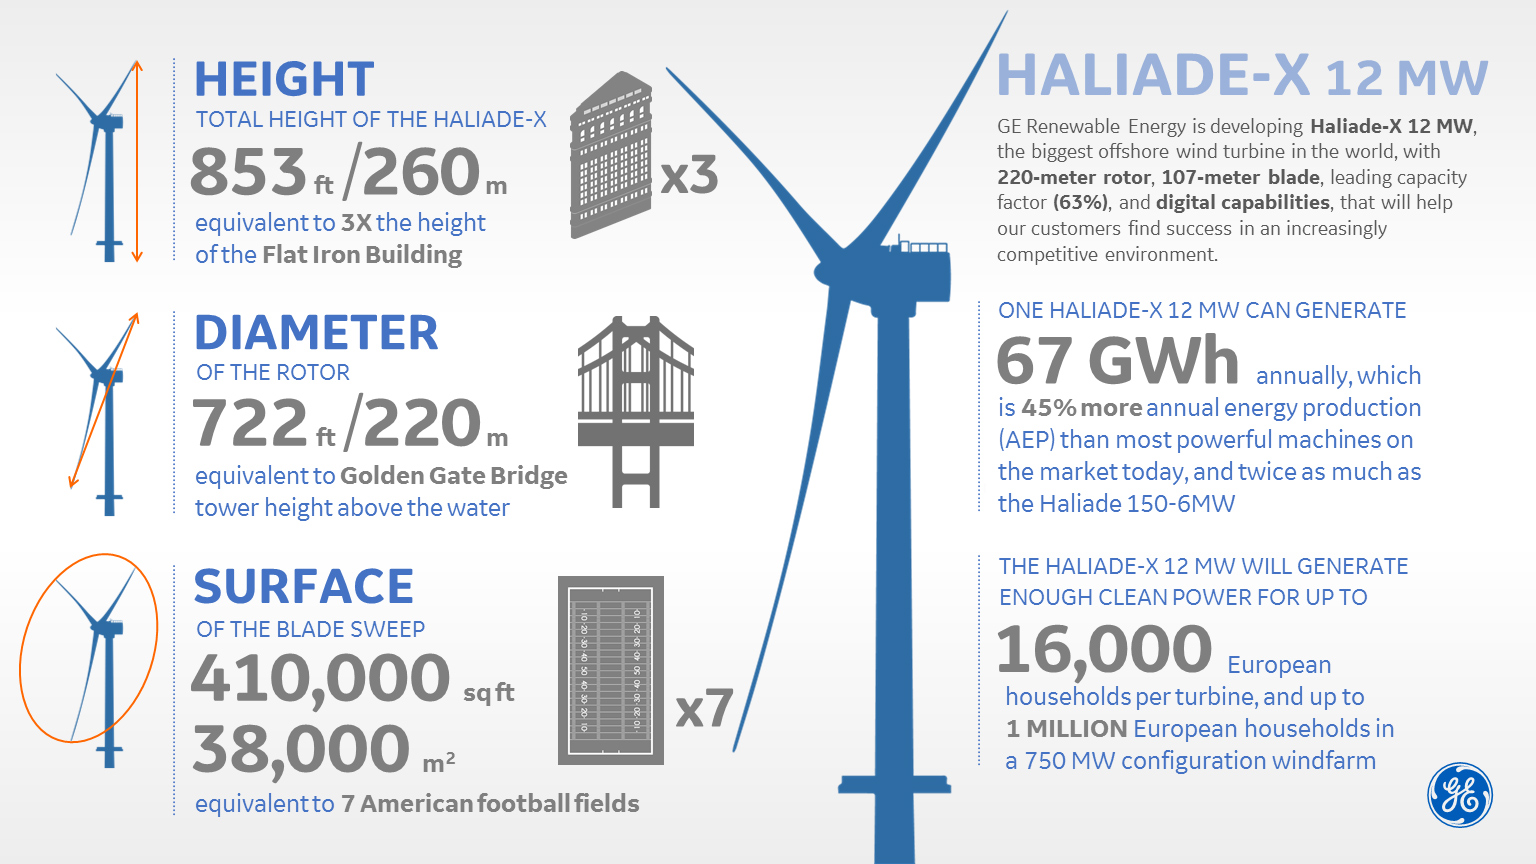 GE launches Haliade-X the world's most powerful offshore